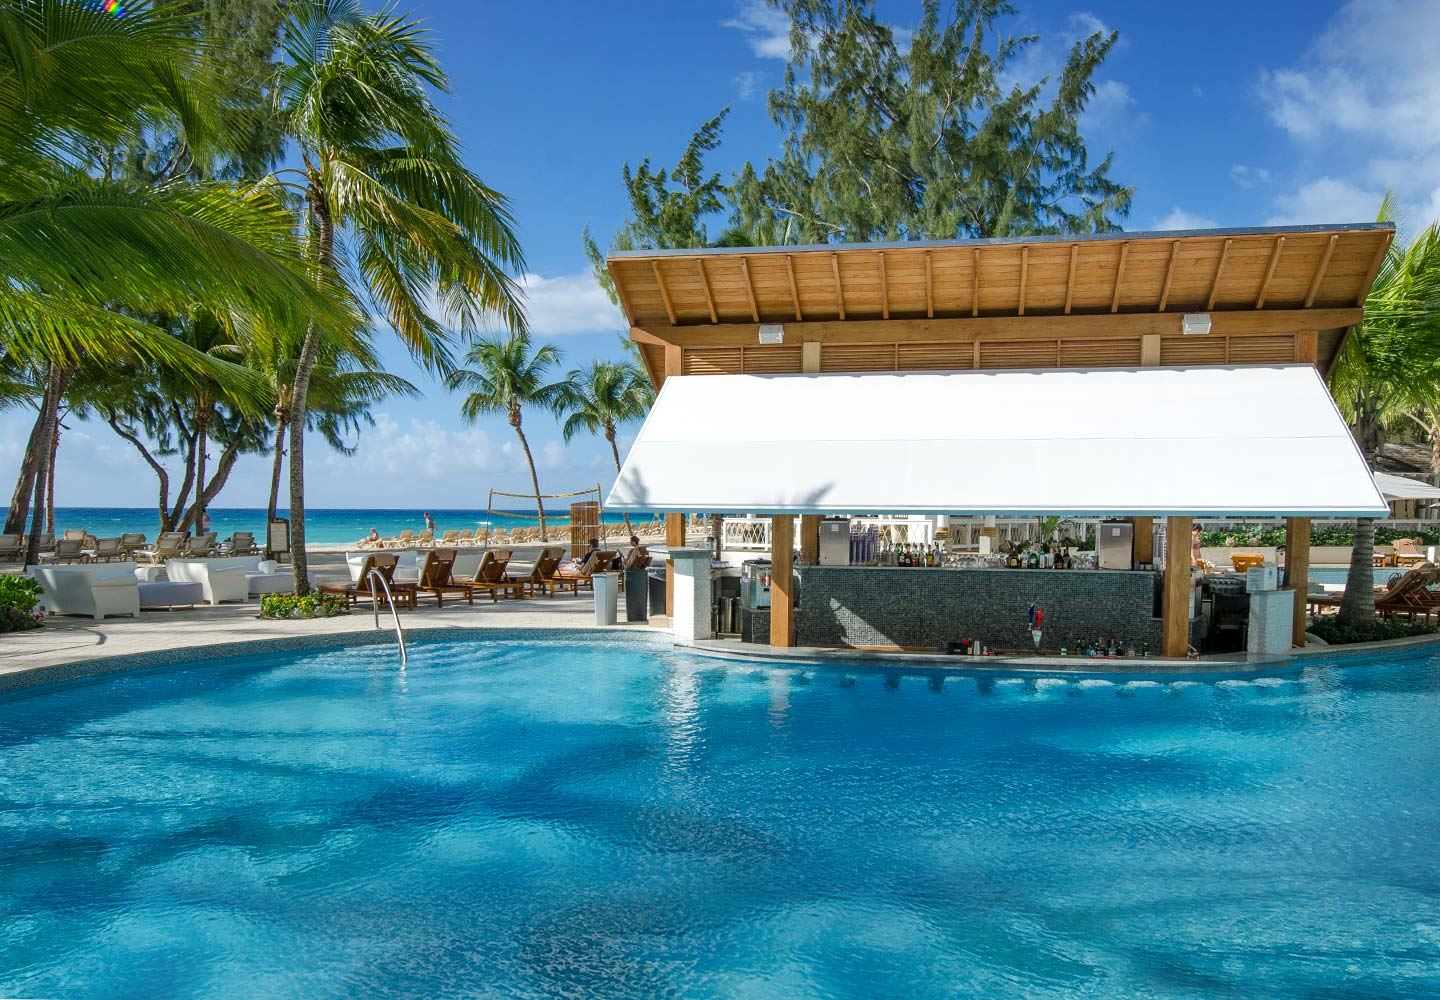 Sandals Resorts Officially Opens Newest Property in         Barbados